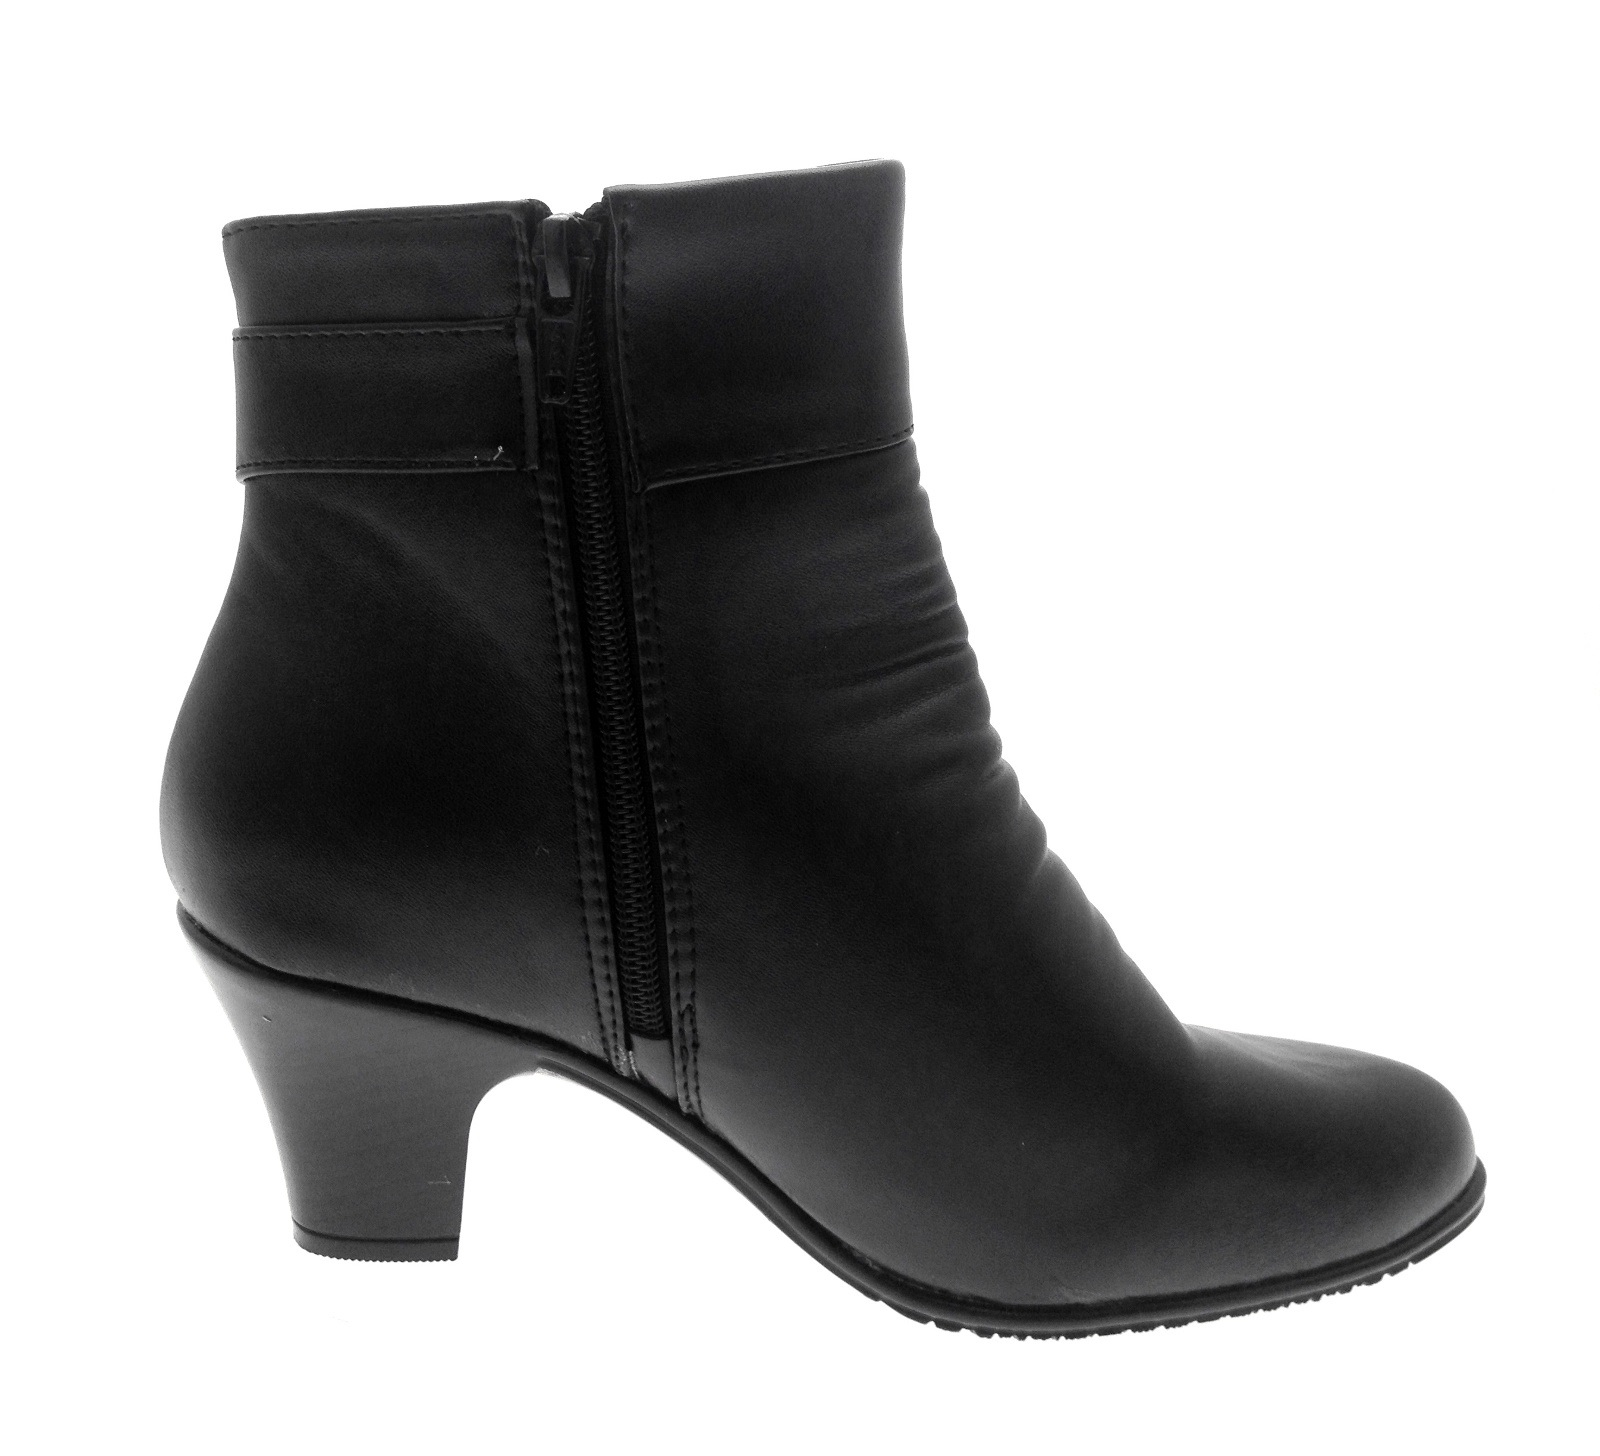 Womens Comfort Low Heel Classic Ankle Boots Faux Leather Ladies ...